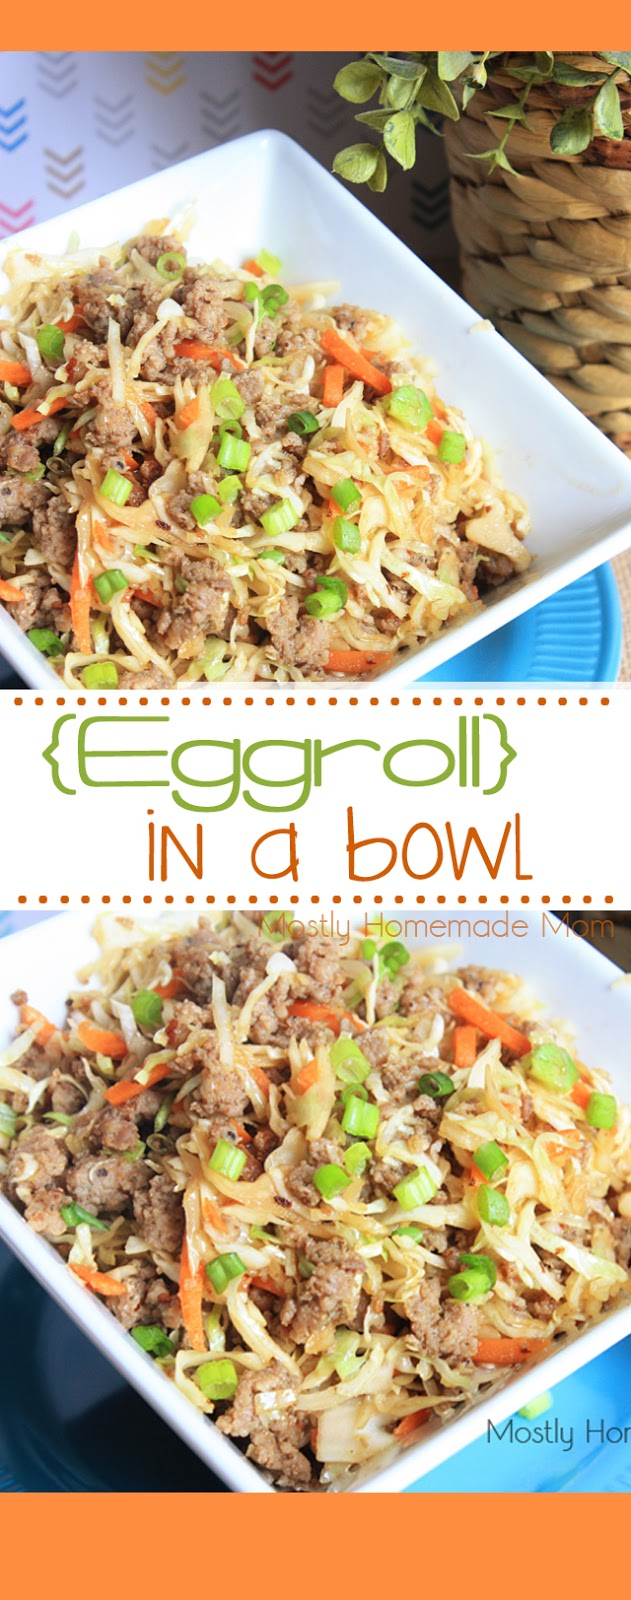 Eggroll in a bowl recipe